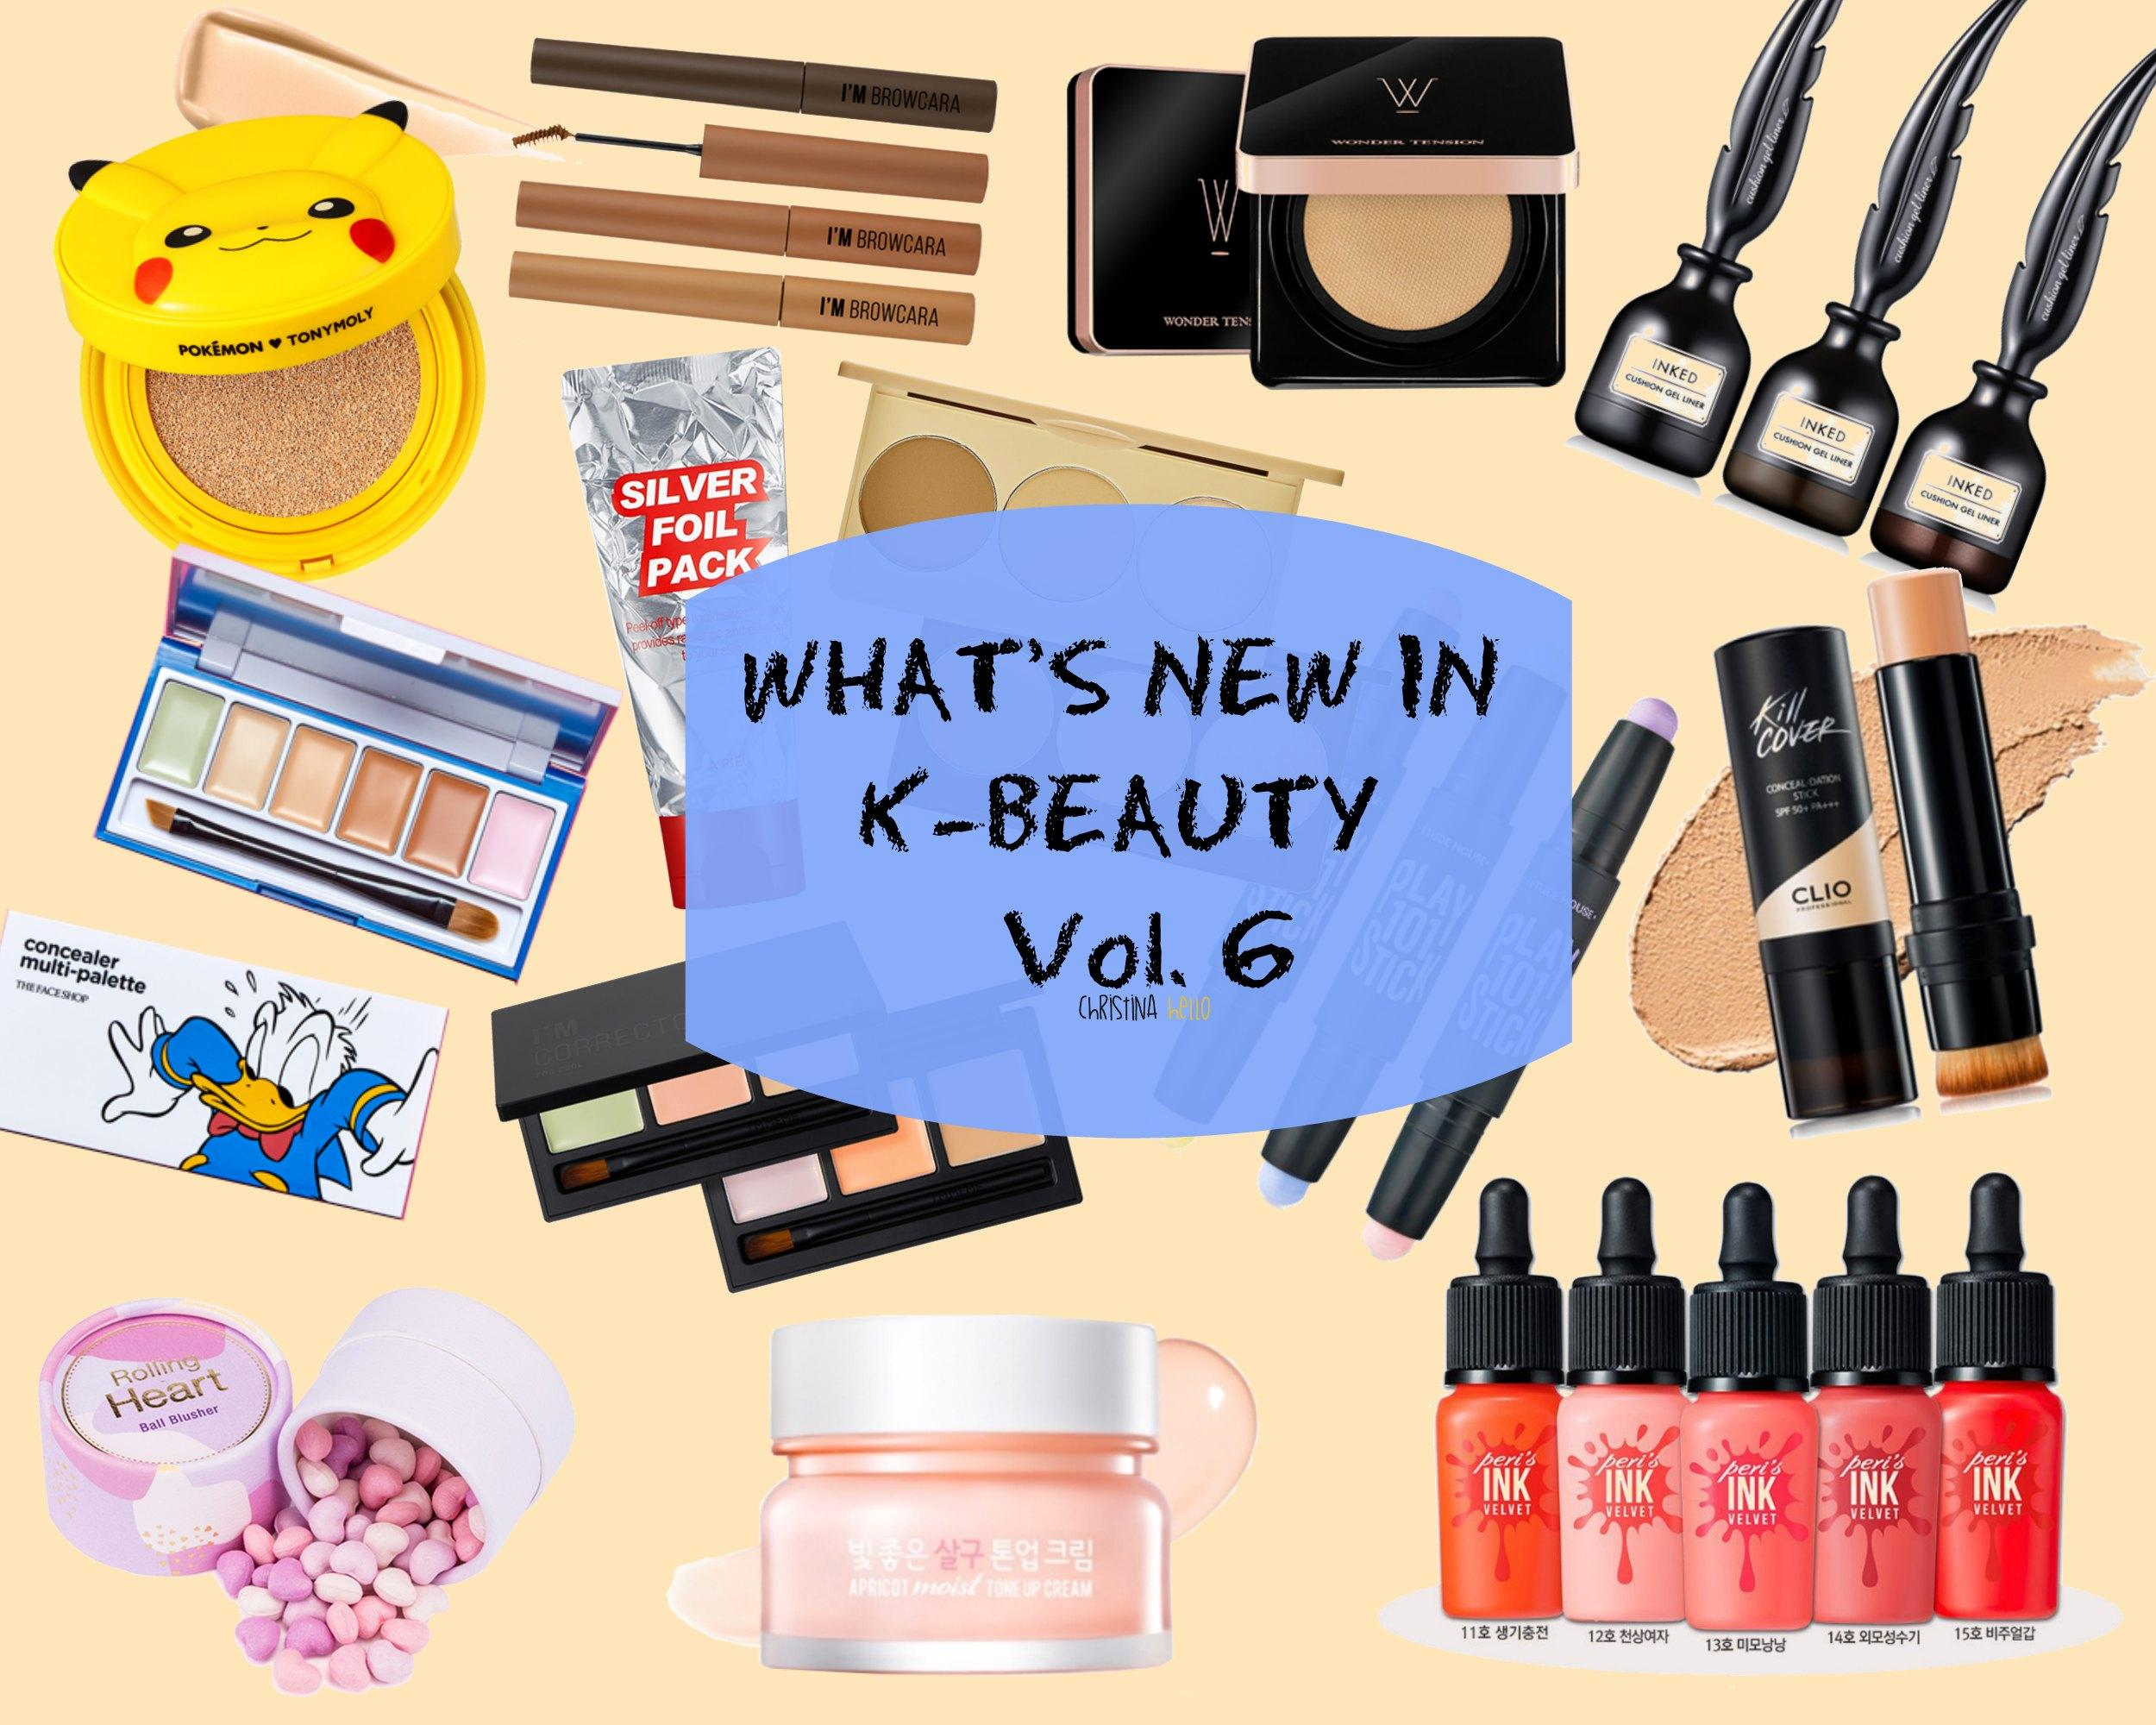 Whats-new-in-K-beauty-vol.-6-1